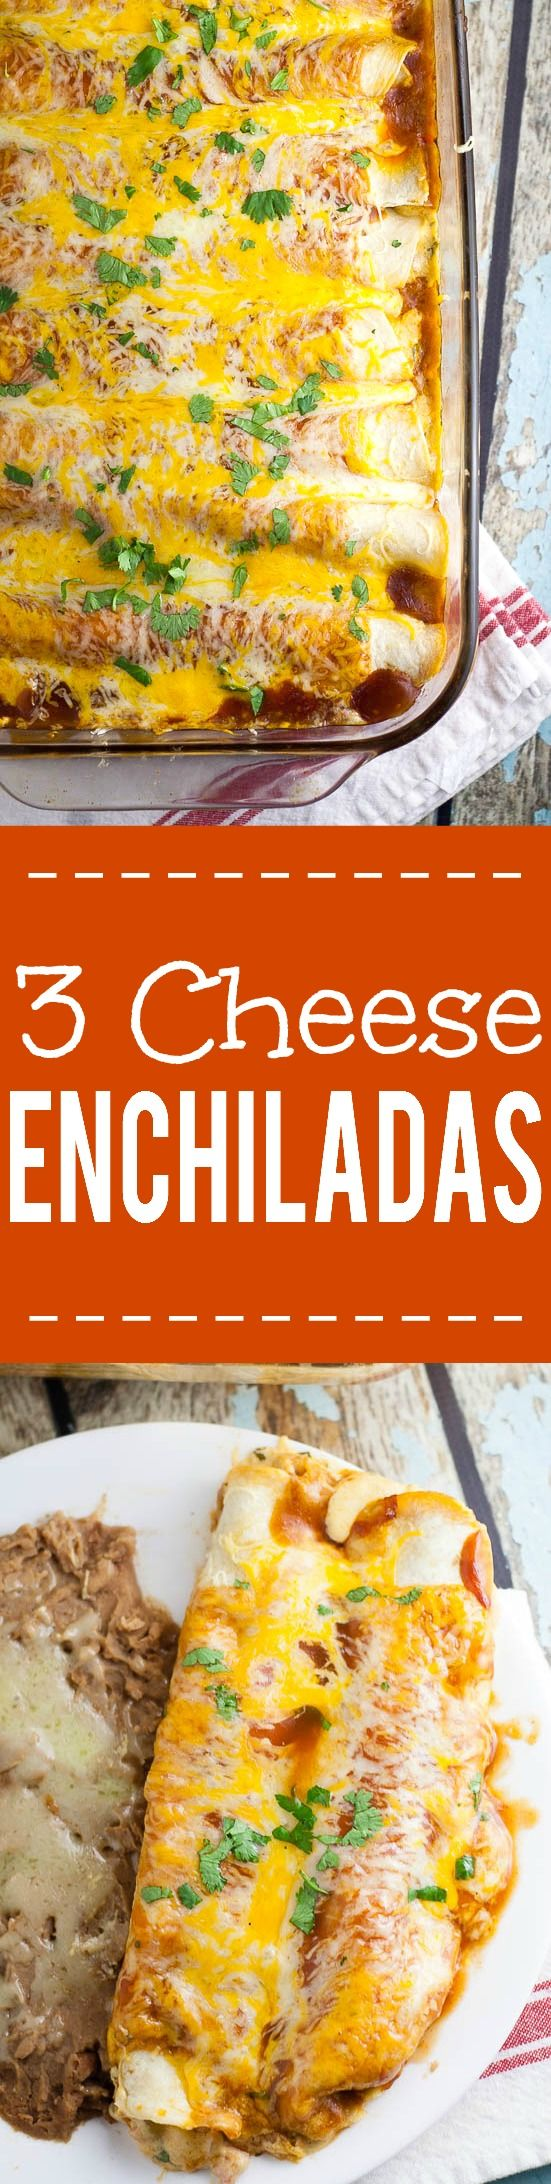 Three Cheese Enchiladas Recipe - Perfect for a meatless Monday vegitarian dinner recipe and a cheese lover's dream, these Three Cheese Enchiladas are filled with cheese, smothered in enchilada sauce, and baked in the oven for a delicious family meal.